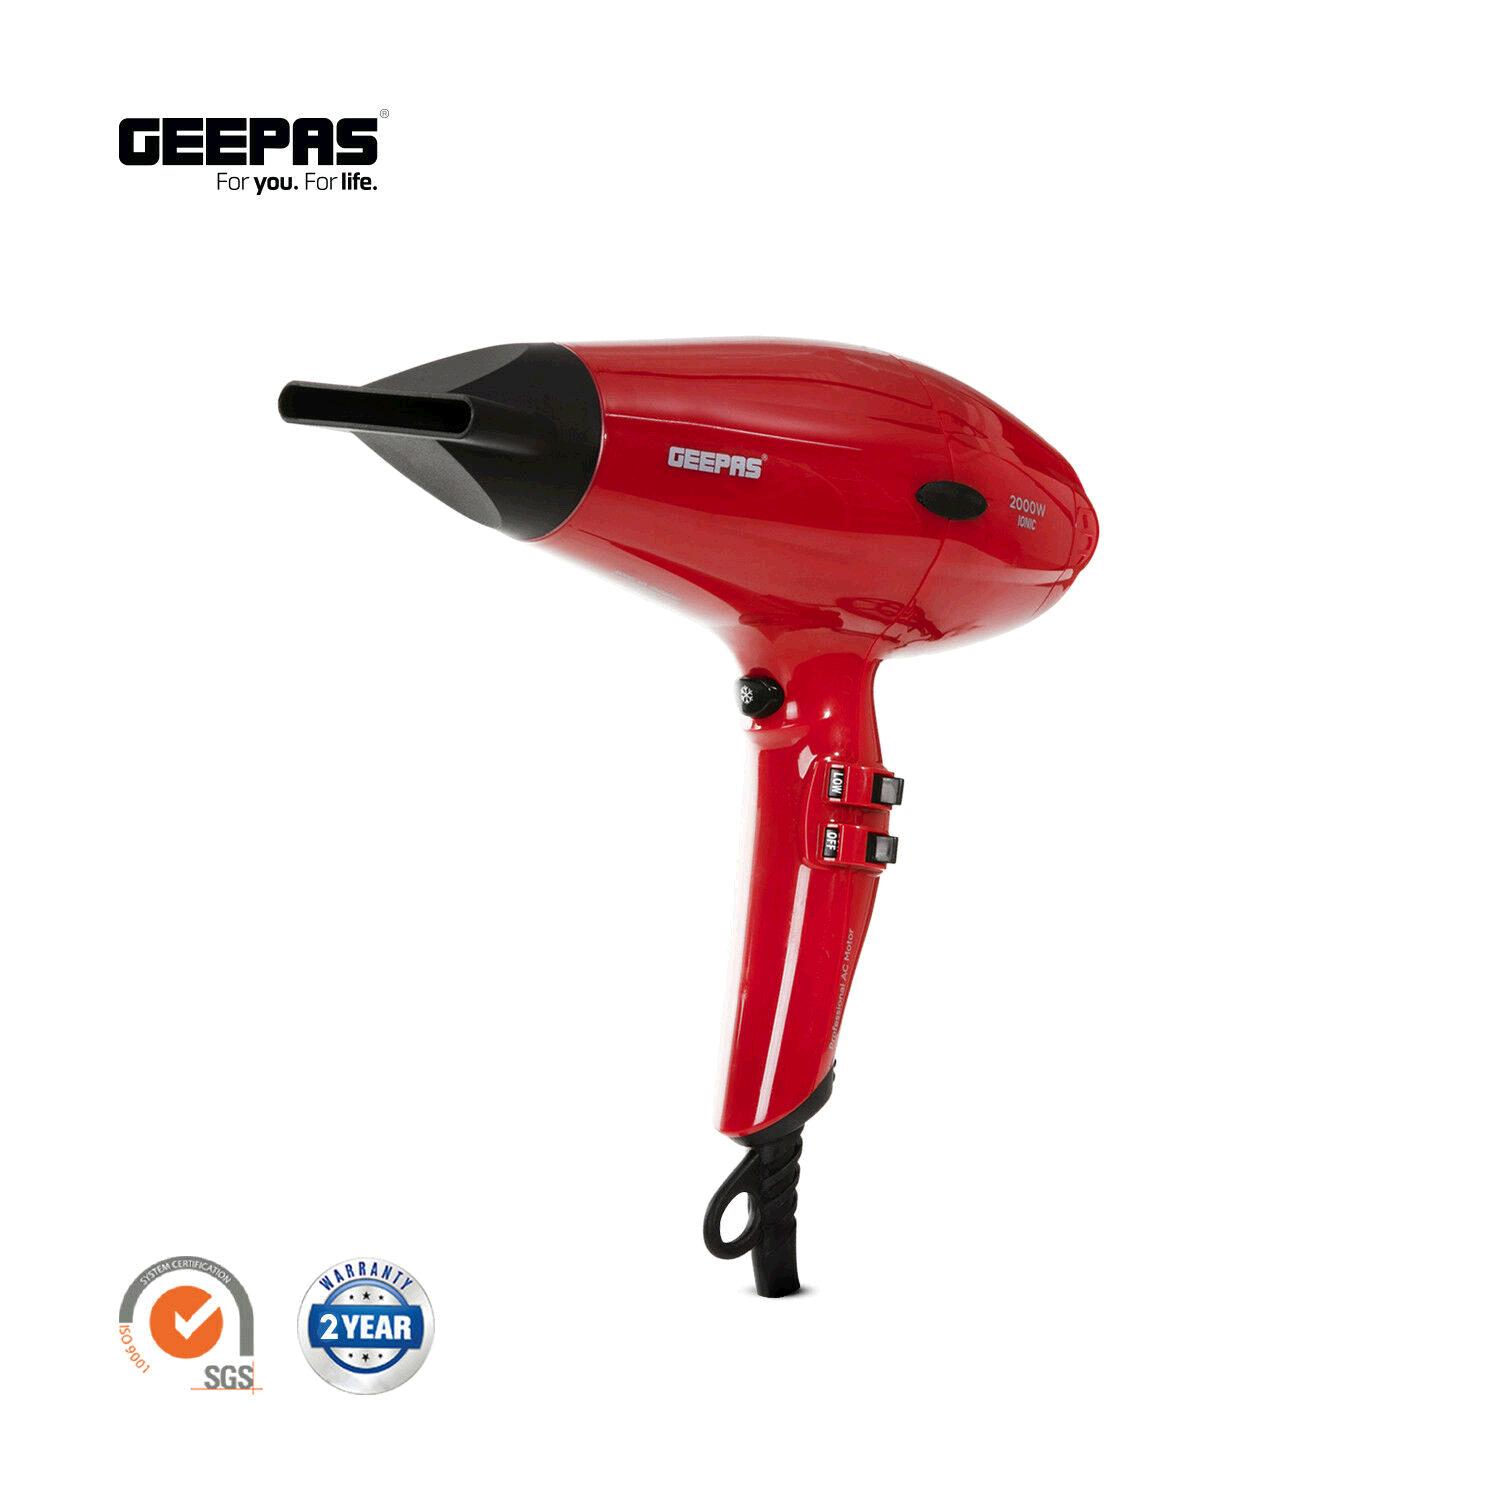 Geepas GHD86020UK Hair Dryer Powerful 2000 Watt with 2-Speed and 3 Temperature Settings